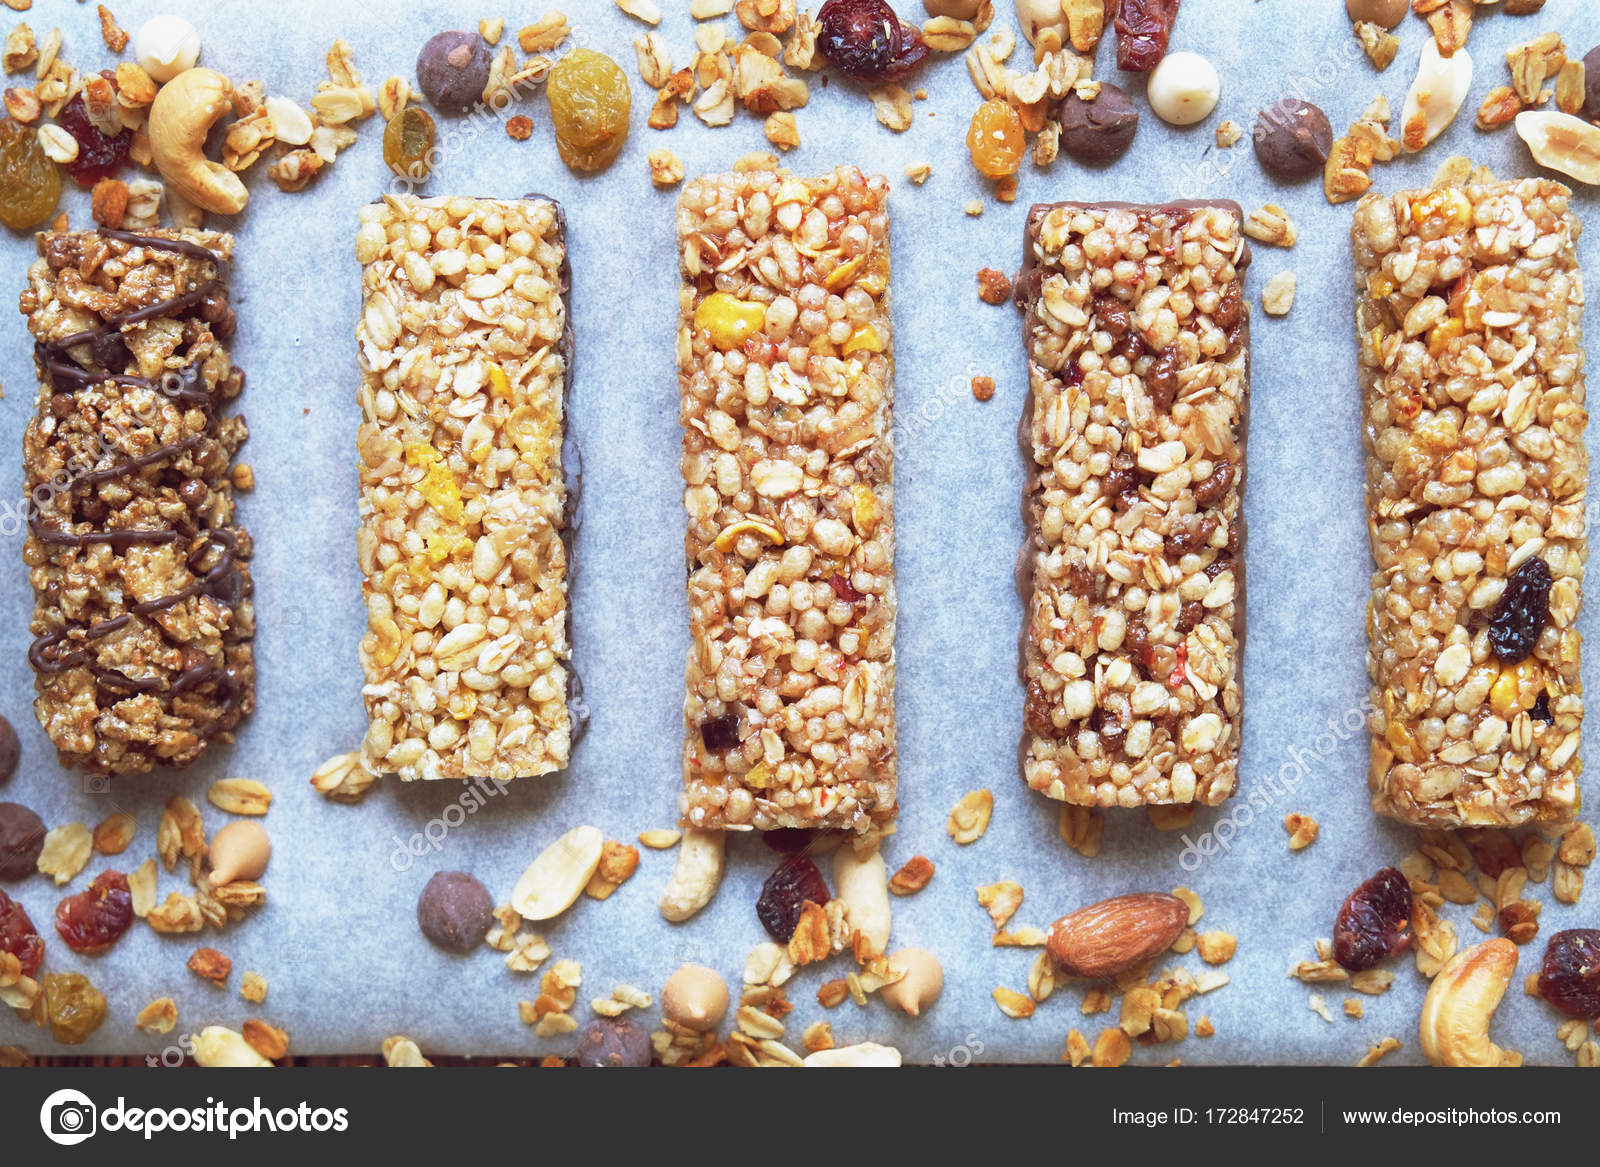 Cereal bars with dry fruits nuts granola and glass of milk on cereal bars with dry fruits nuts granola and glass of milk on wooden backgroundp viewhealthy homemade cereal bars with nuts seeds and dried fruits on ccuart Choice Image